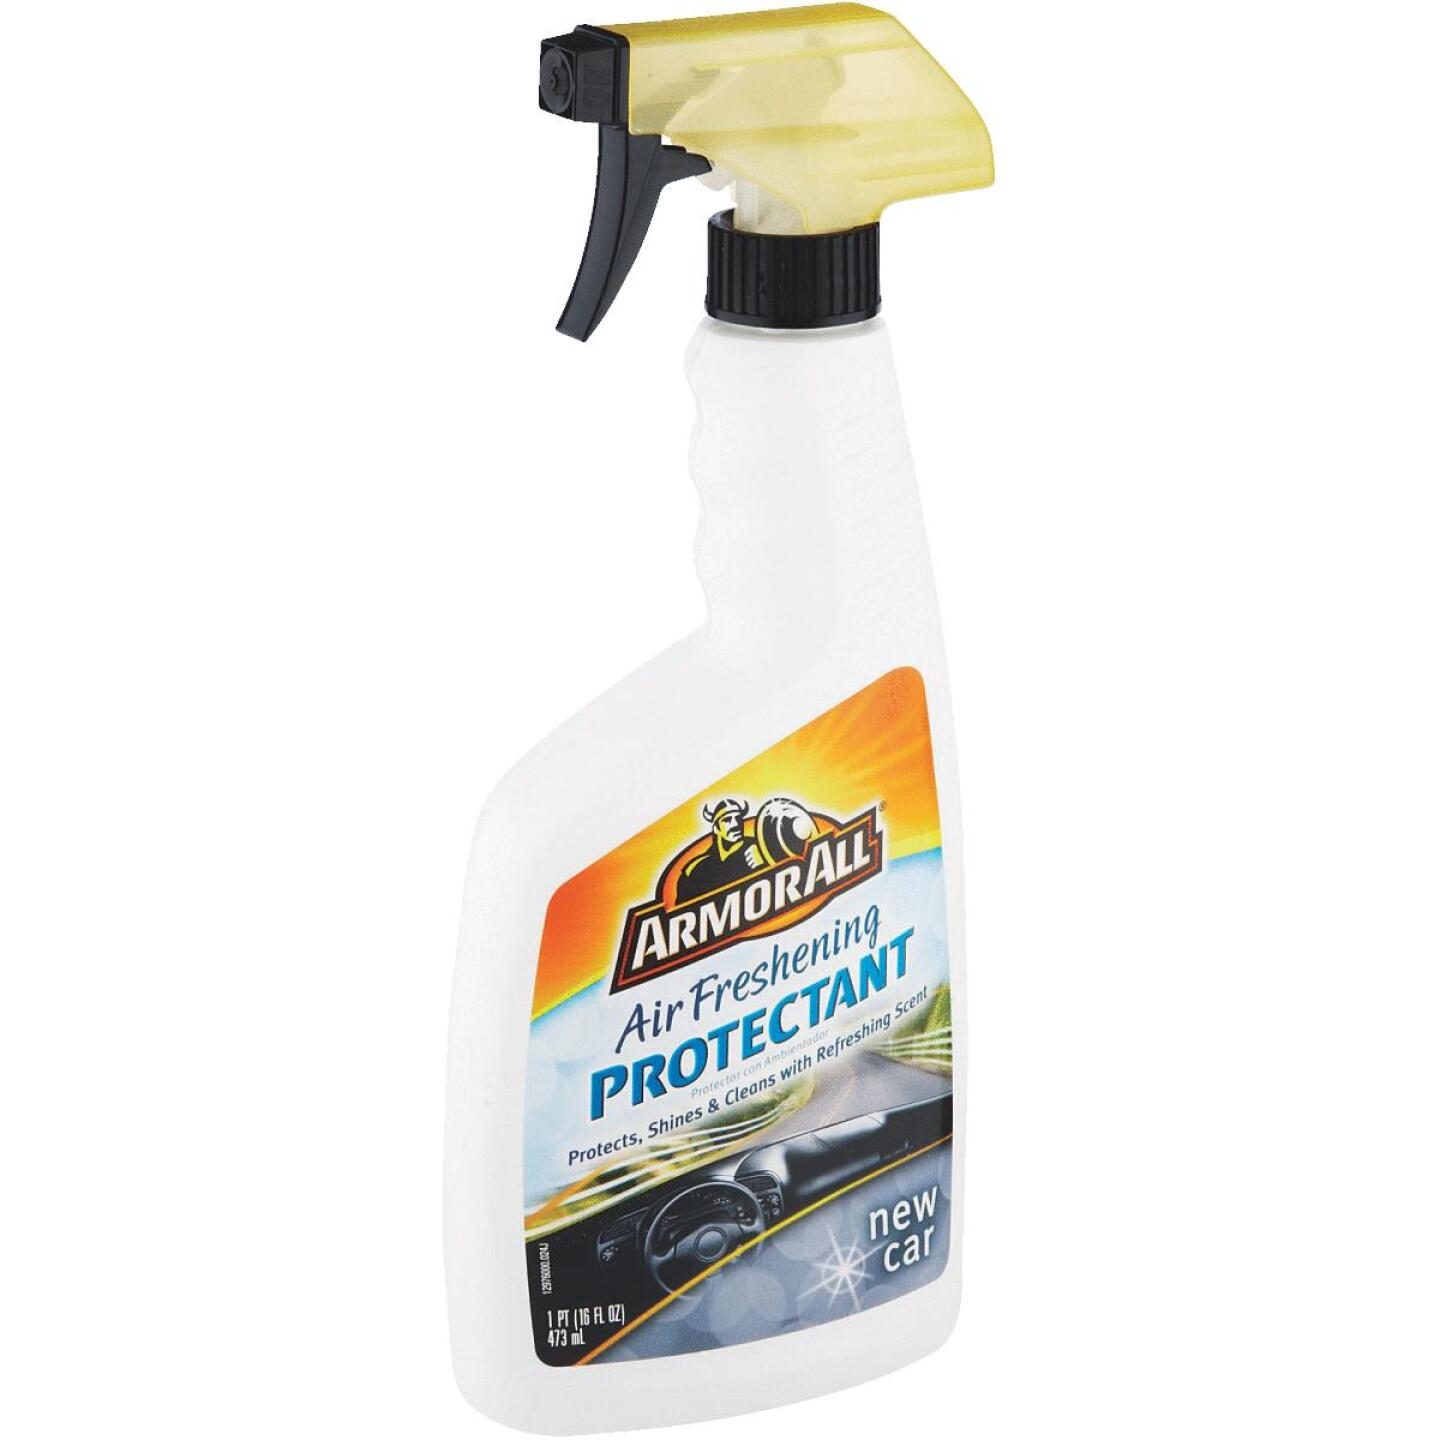 Armor All 16 Oz. Pump Spray Air Freshening Protectant, New Car Scent Image 2